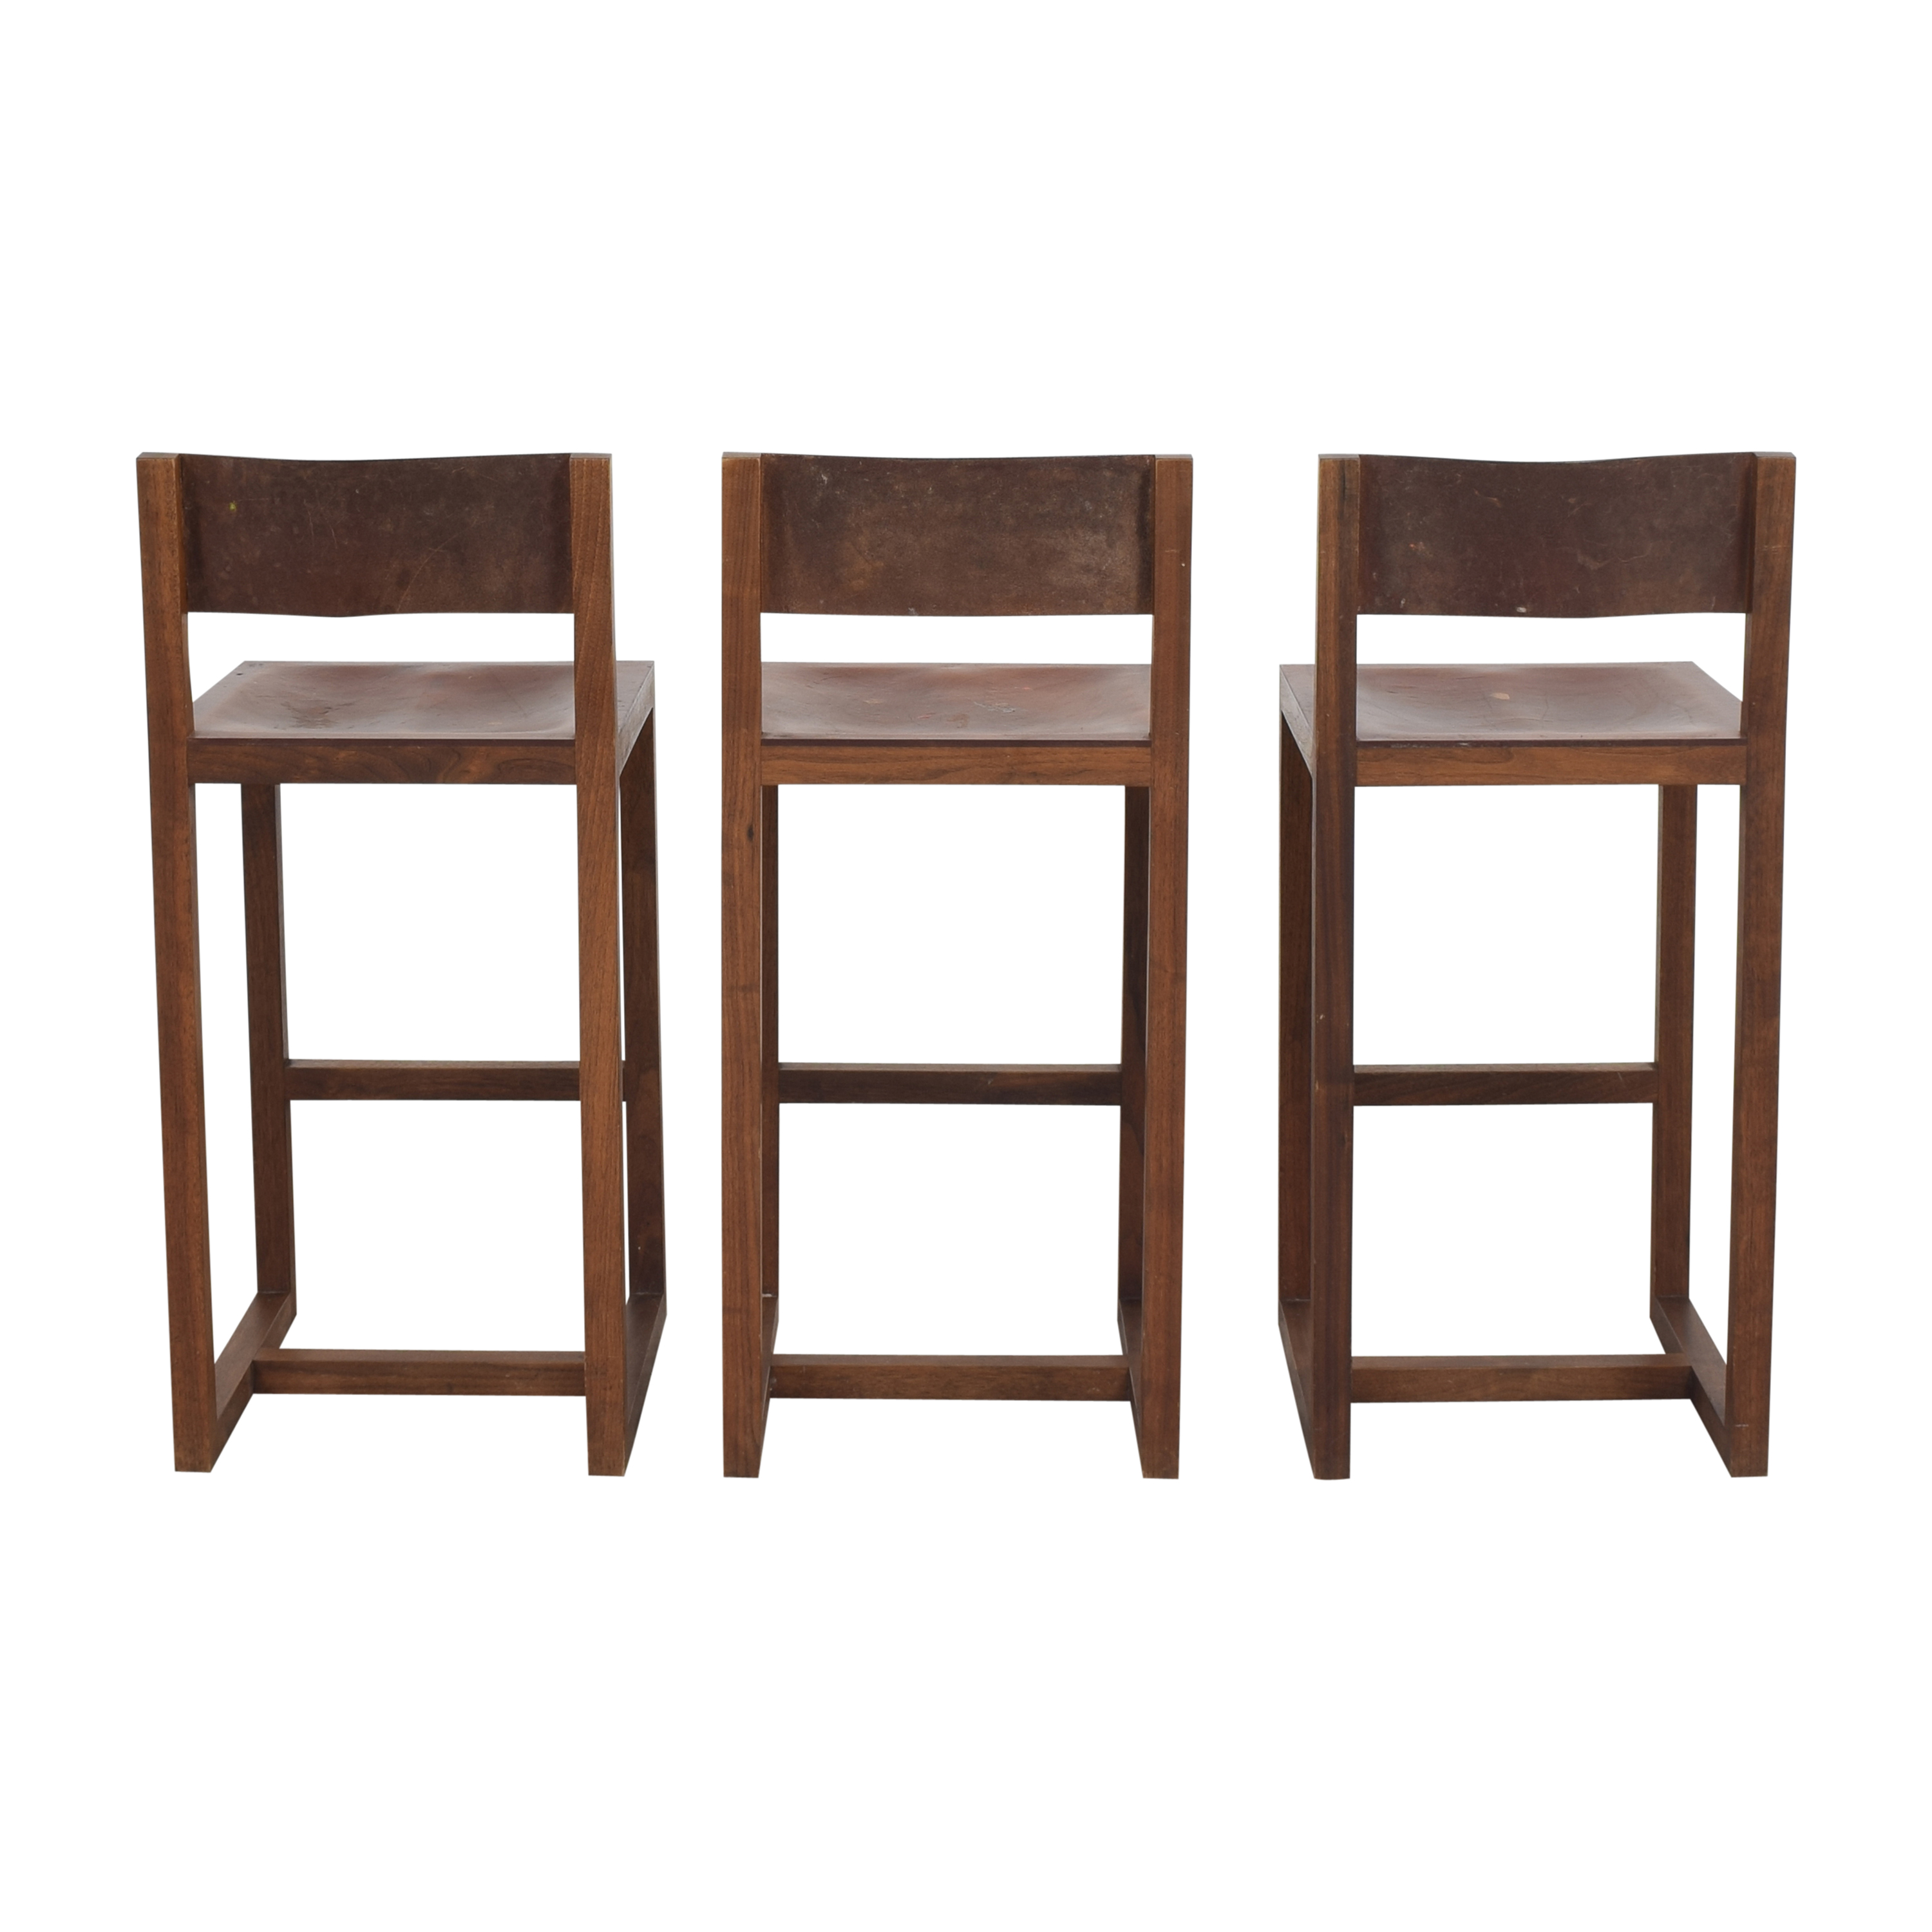 BDDW Square Guest Counter Stools sale